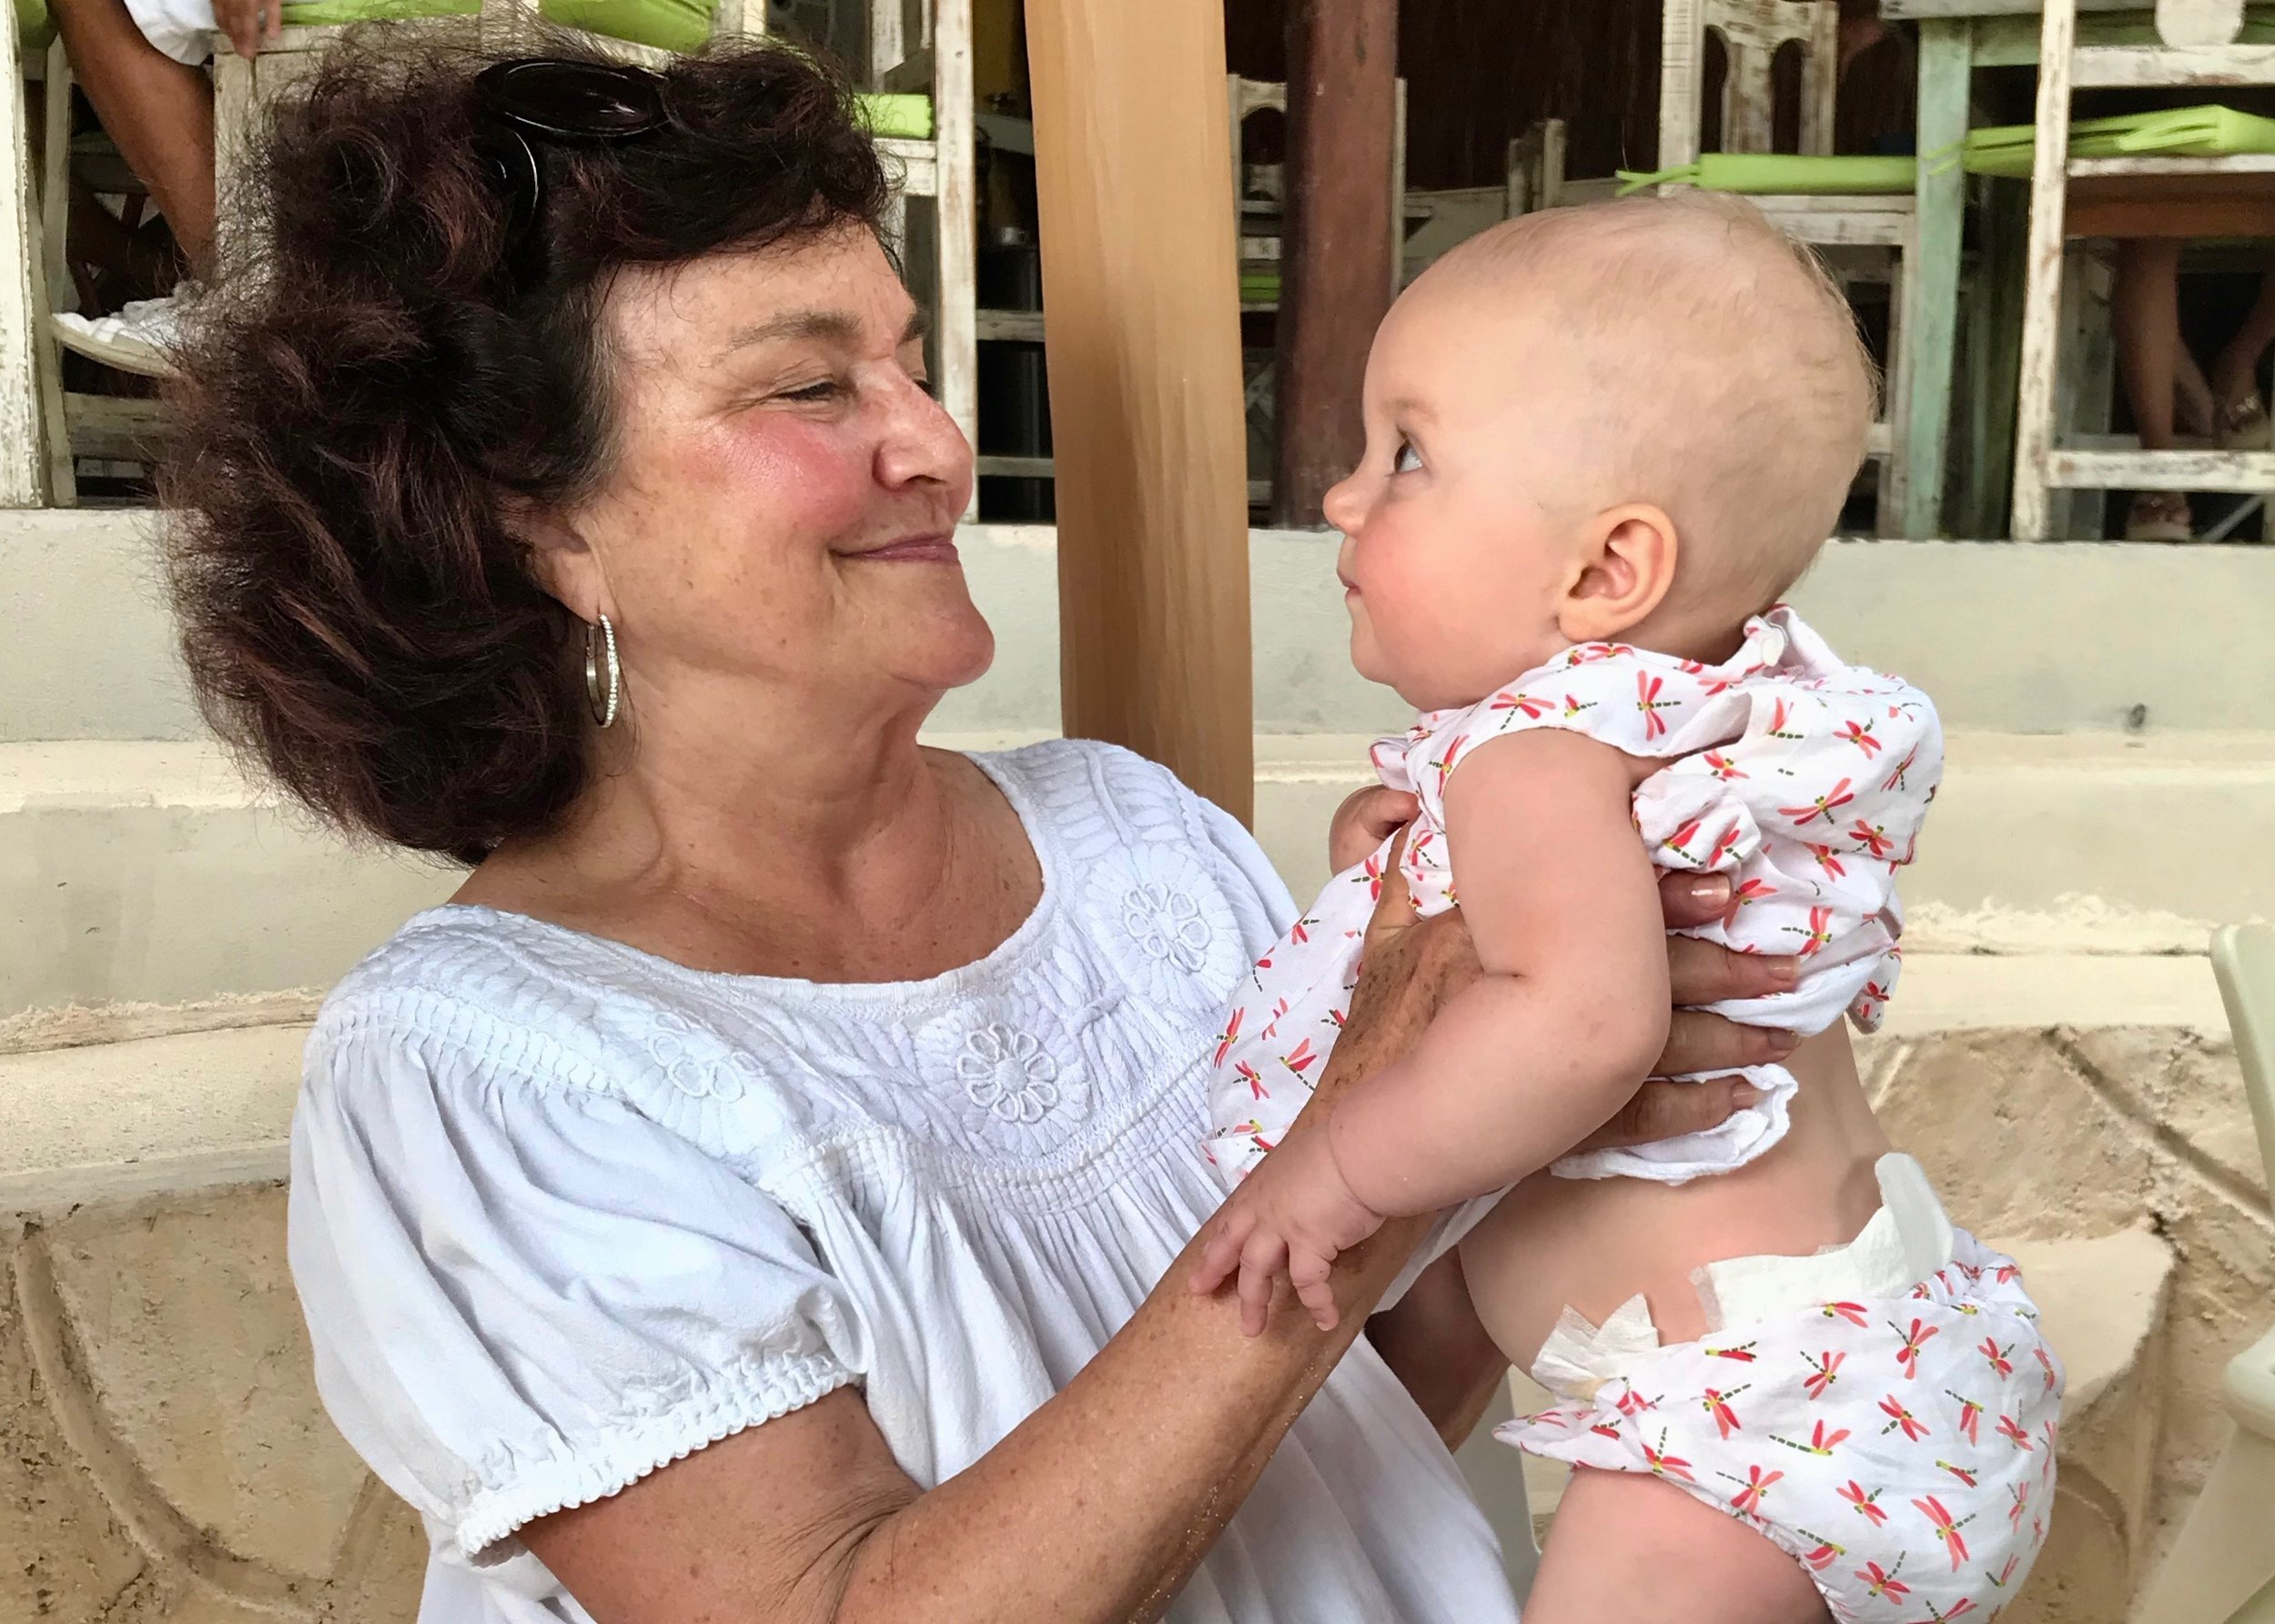 Grandma on duty:  We love our La G, but I wouldn't say her babysitting services are free.